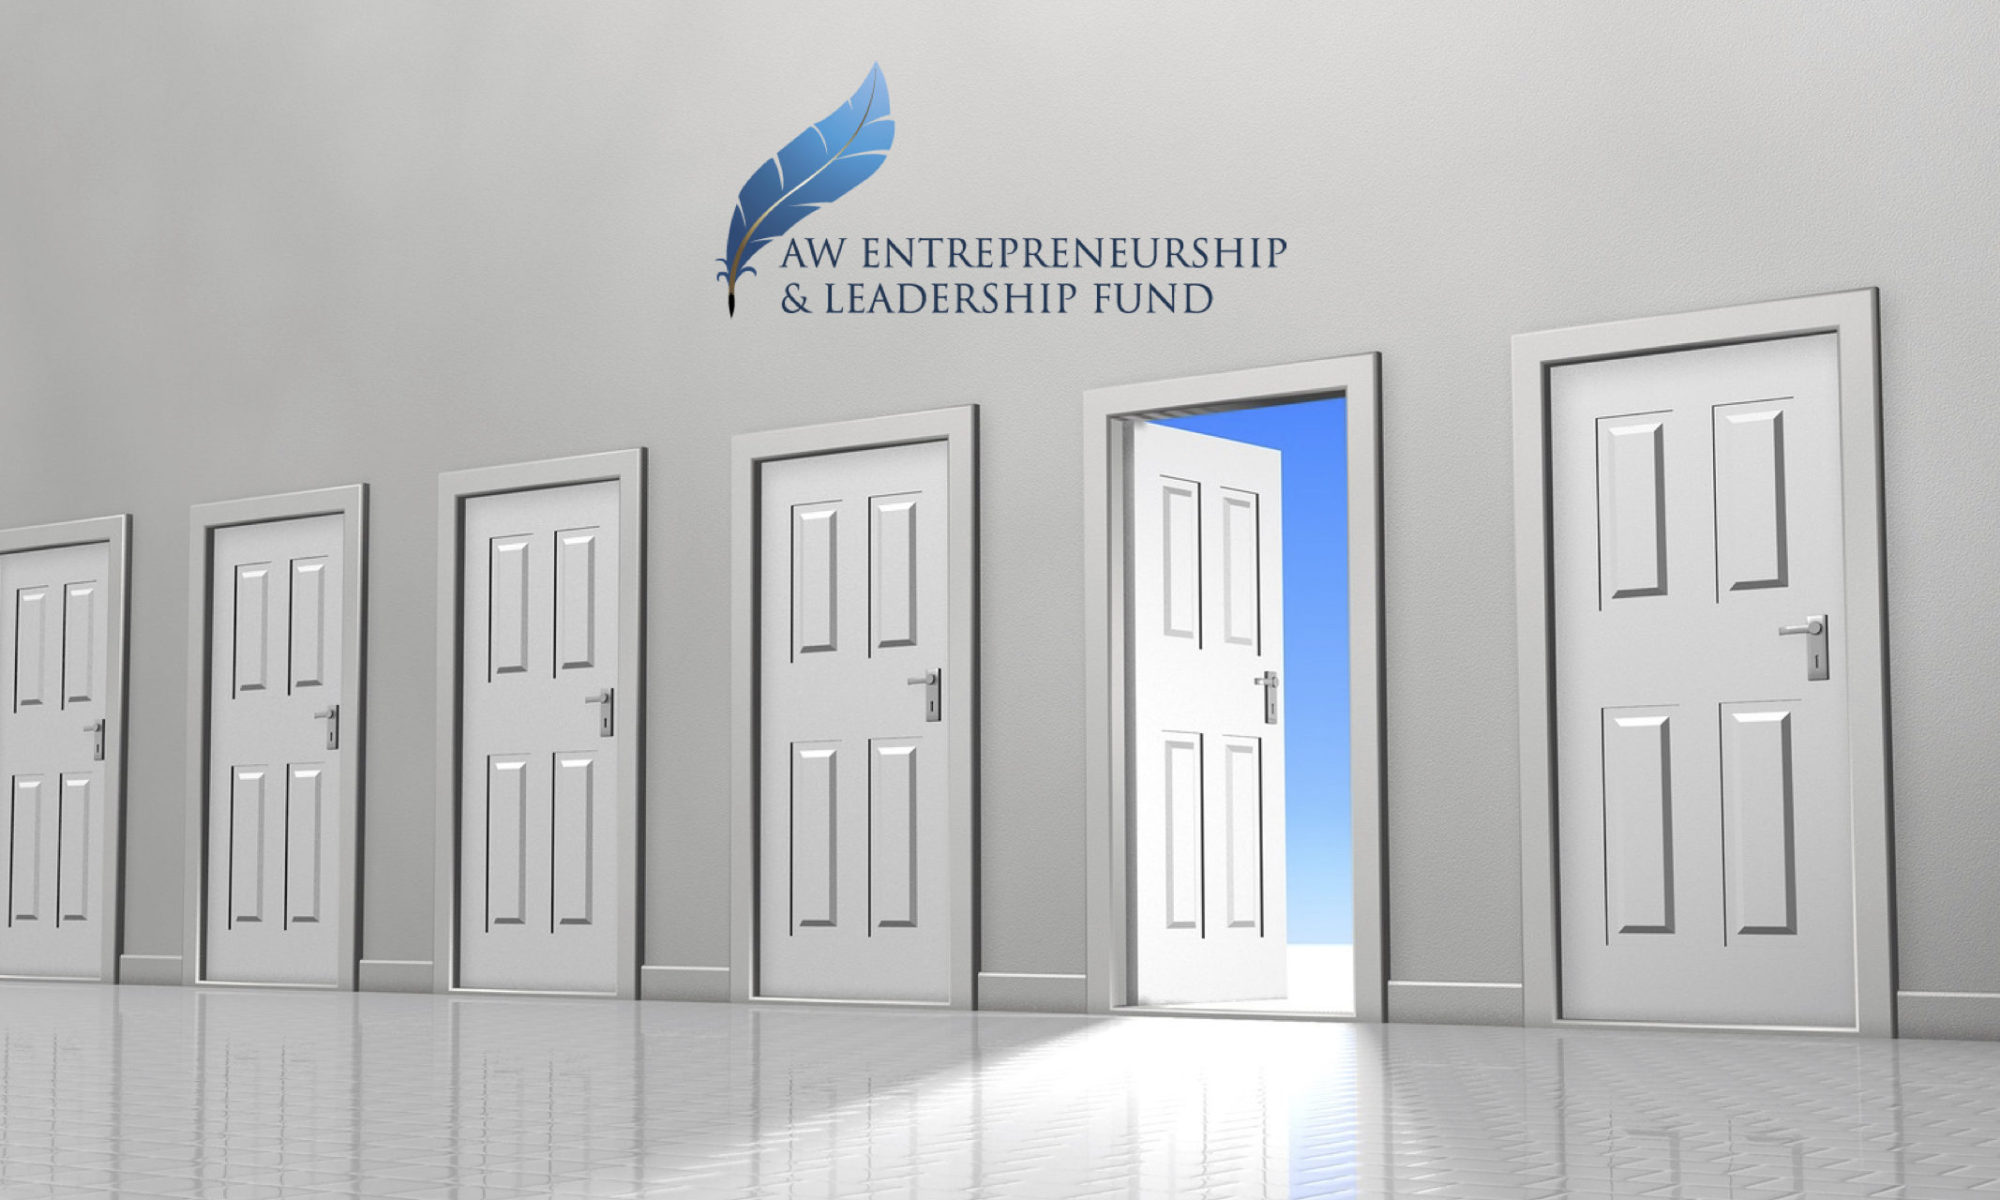 Arthur Wylie Entrepreneurship and Leadership Fund